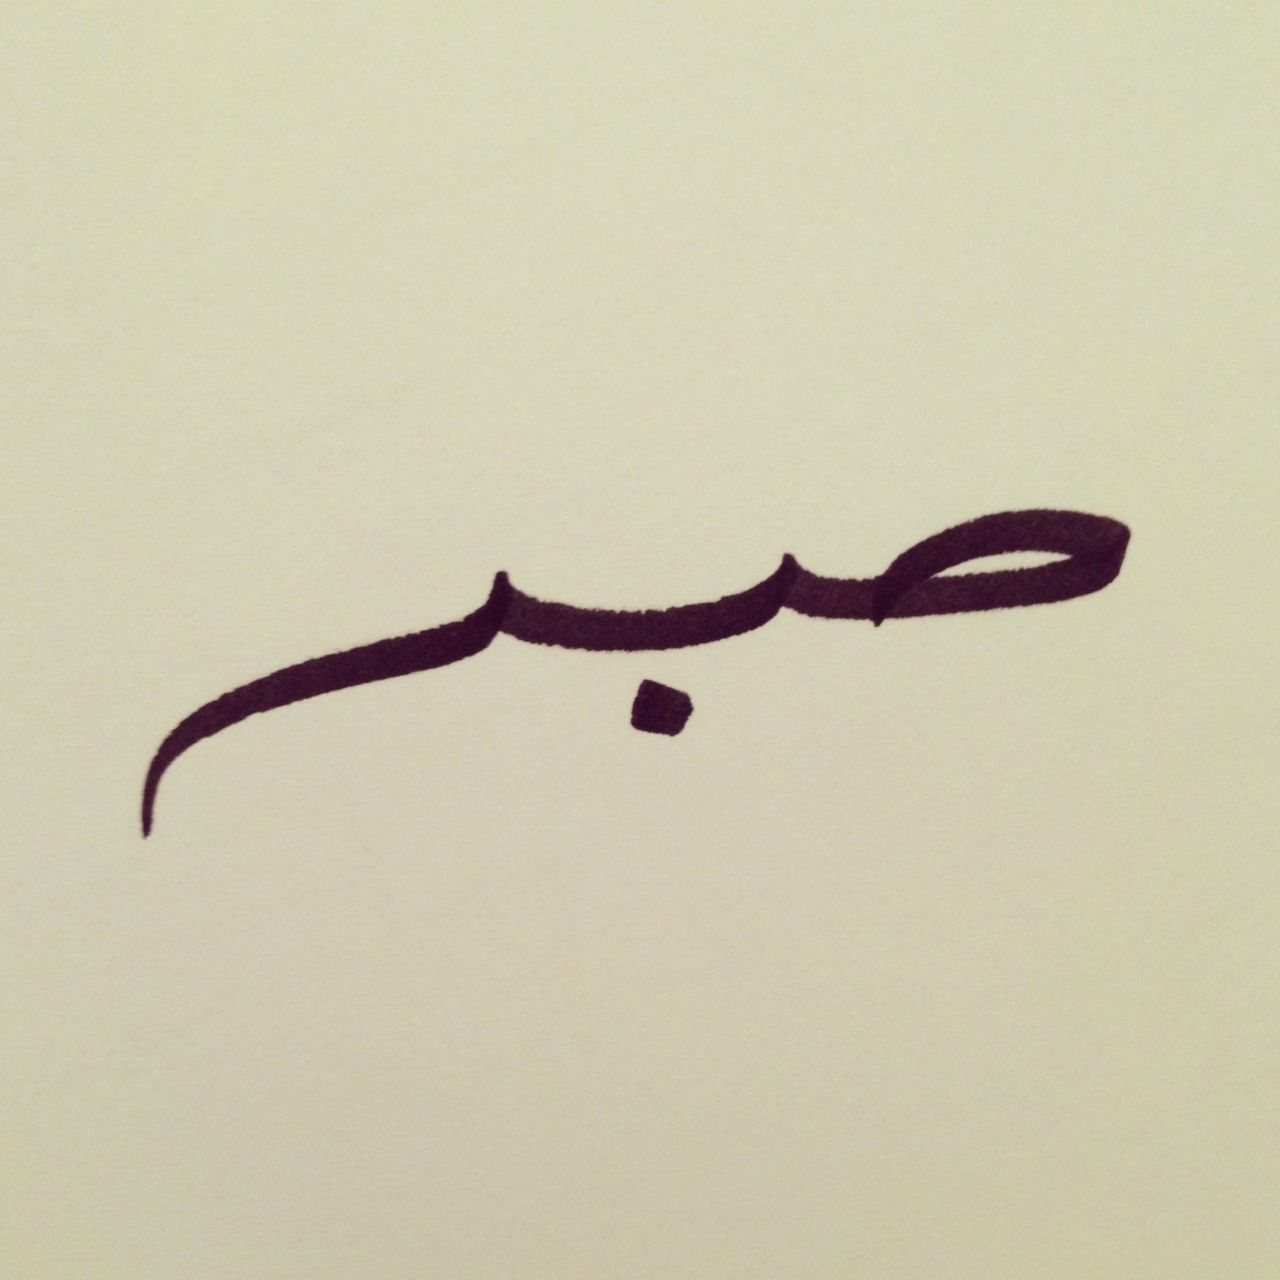 Sabr (Patience) Calligraphy | Callligraphy | Pinterest ...